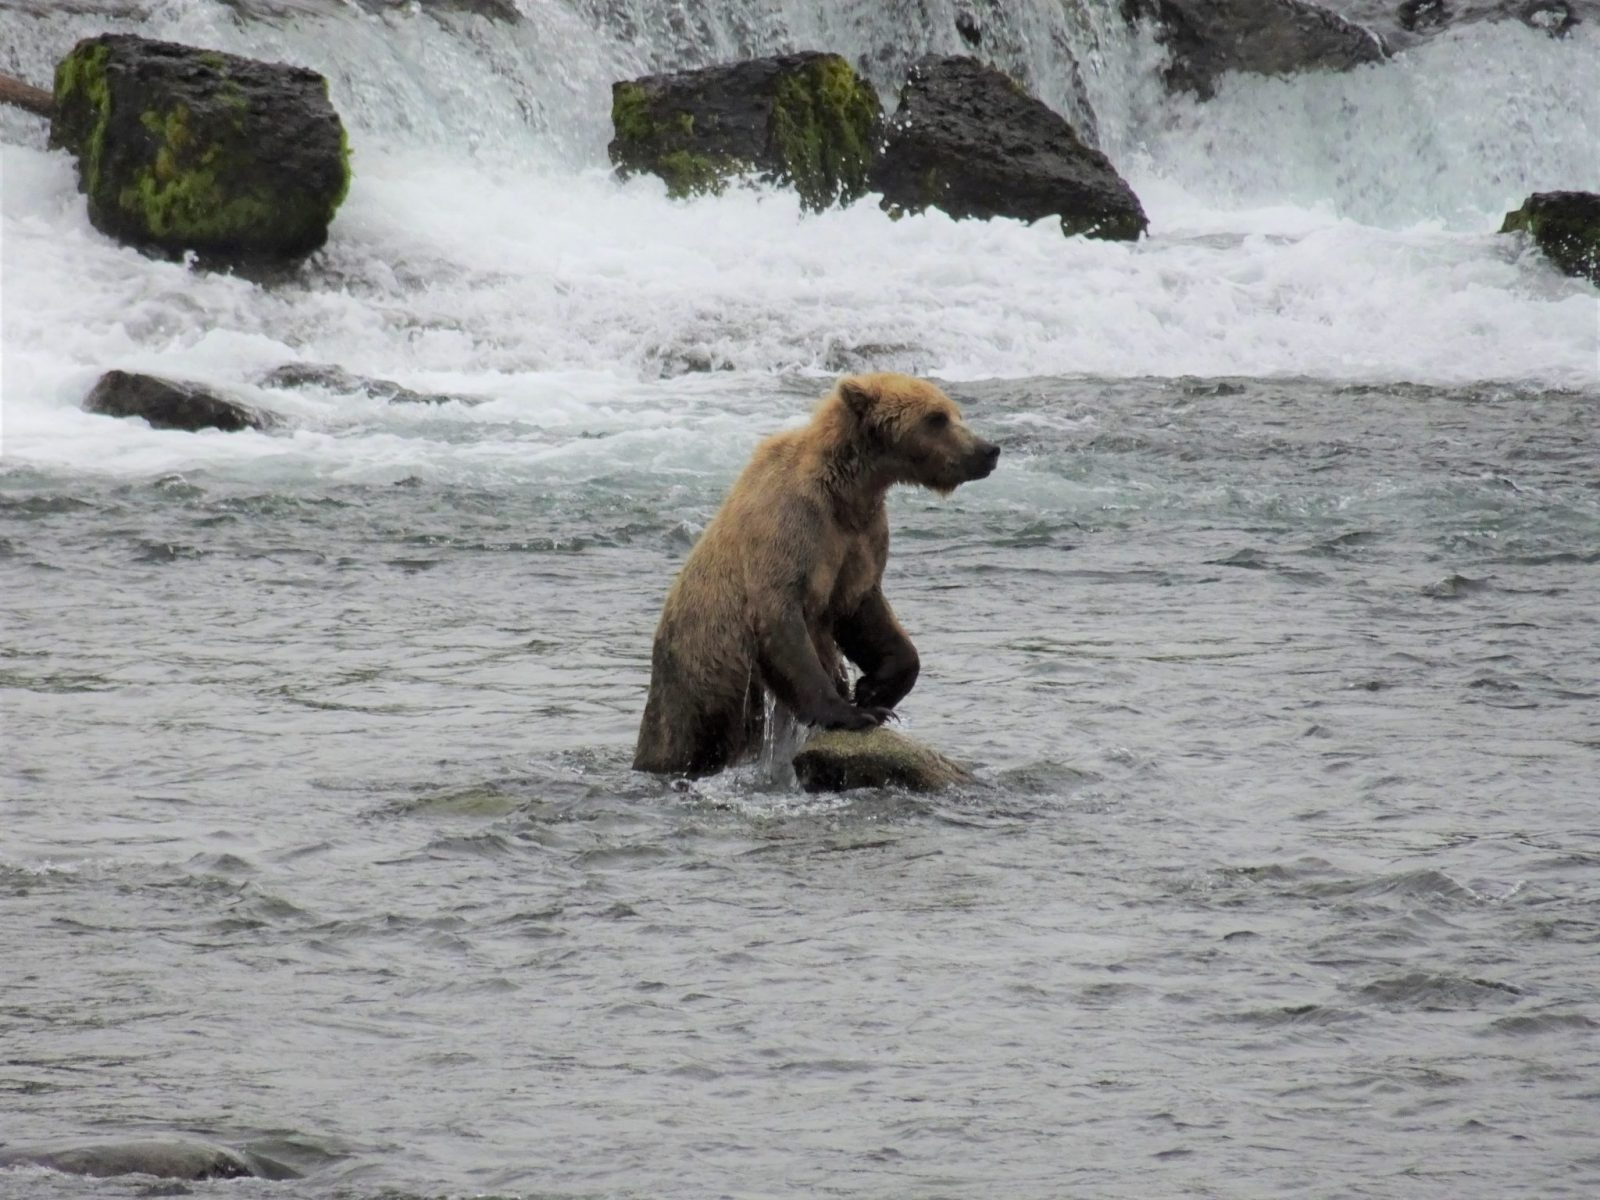 A brown bear standing in the rapids of a river in Katmai National Park in Alaska